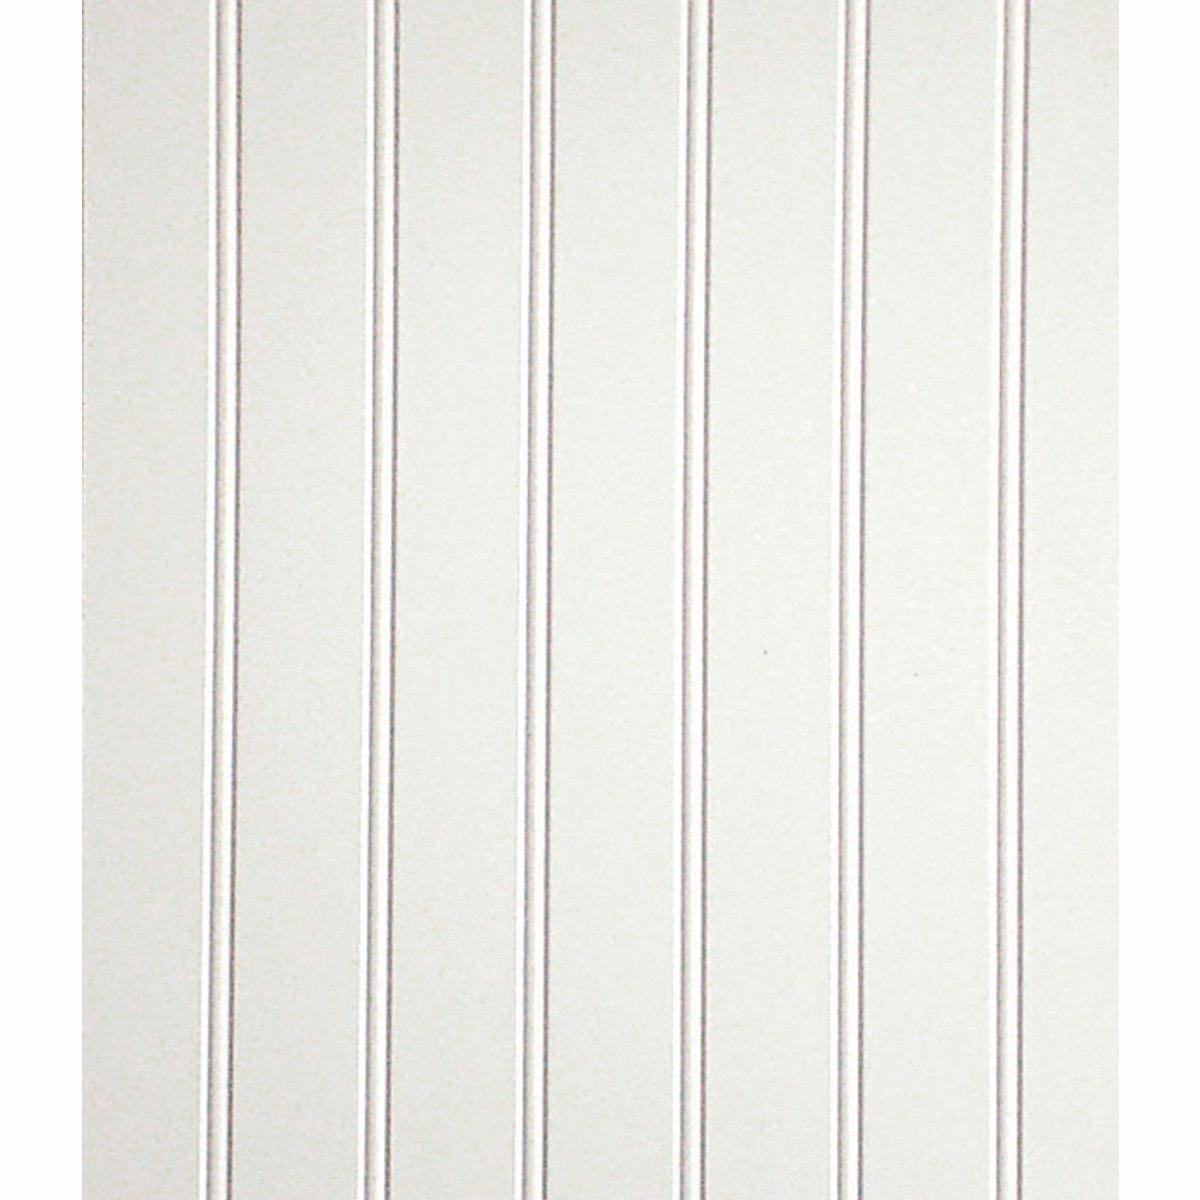 Wall paneling with finished wood panels with interior 4x8 paneling with white timber wall panelling